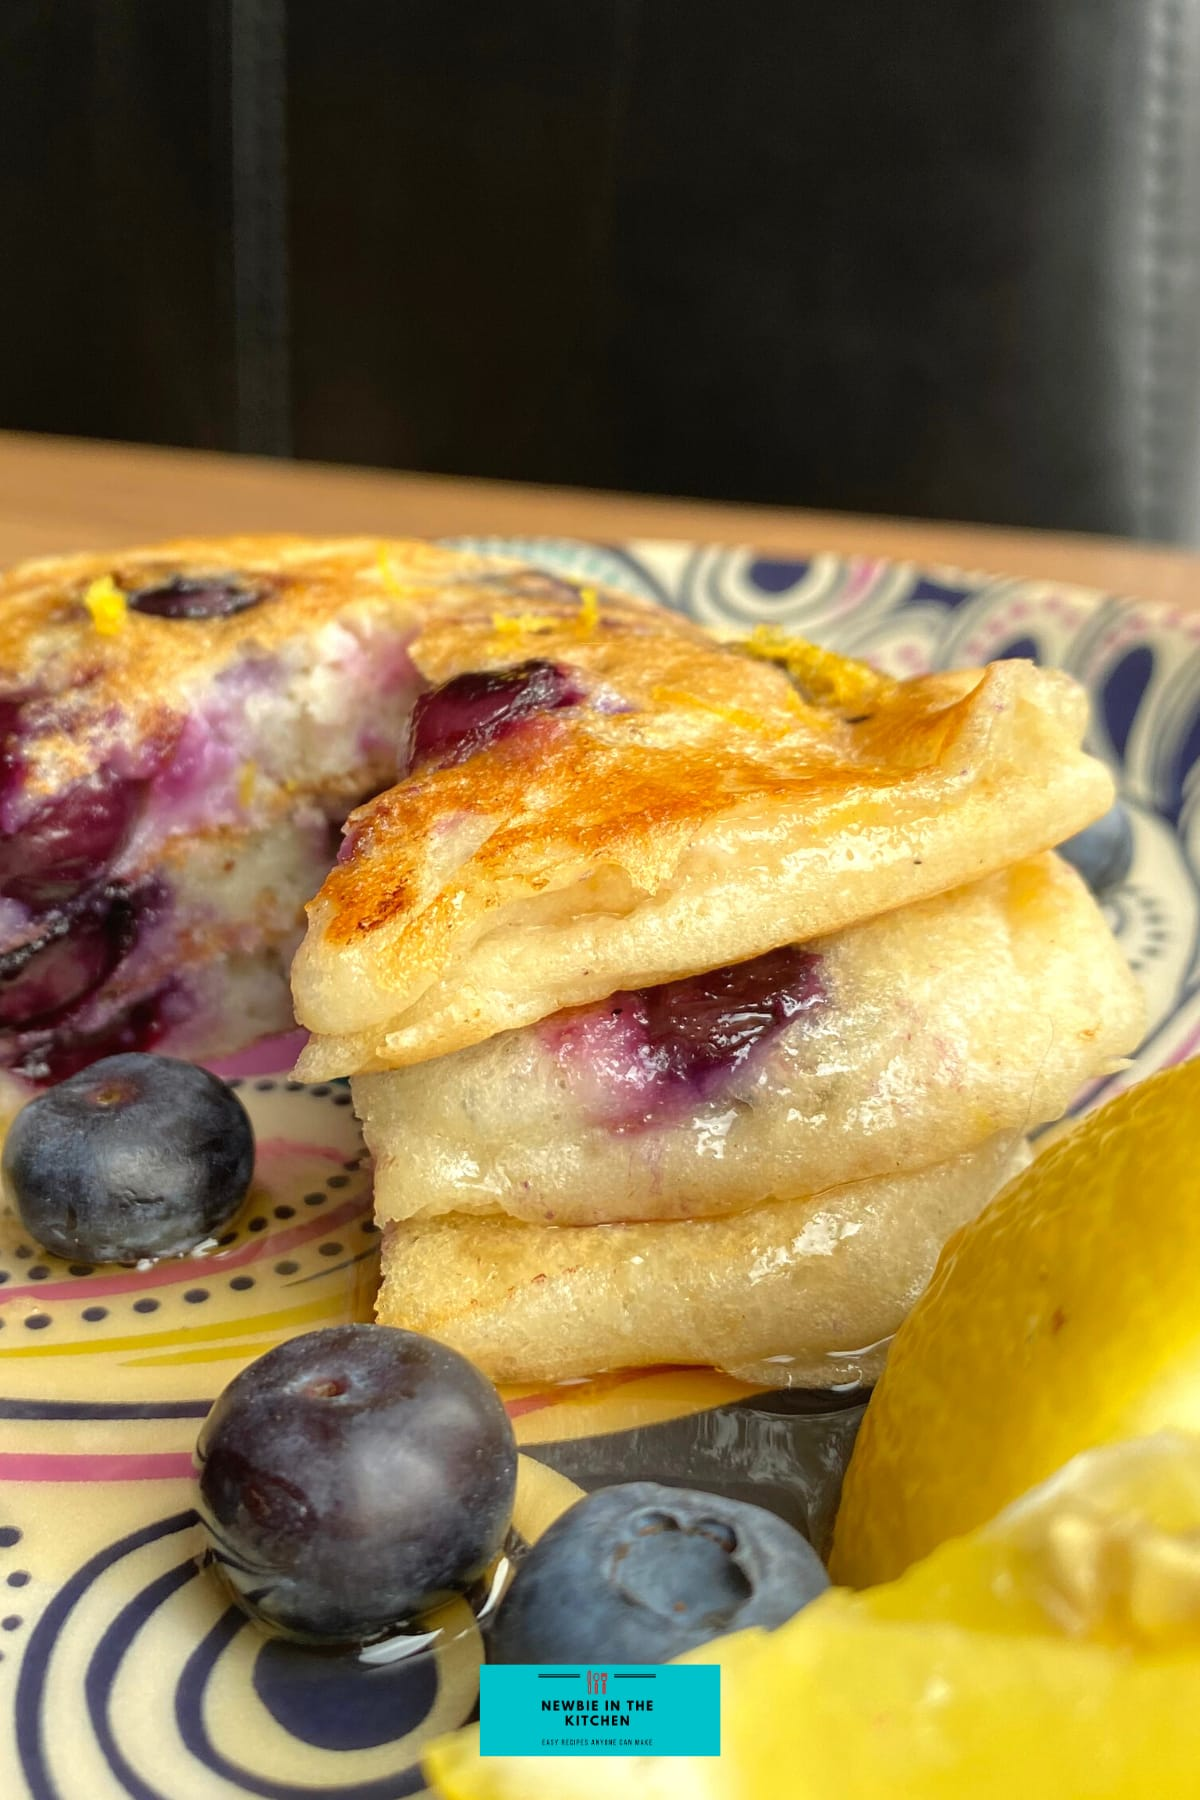 Fluffy Blueberry and Lemon Pancakes. Quick and easy made from scratch pancakes, bursting with juicy blueberries. Light and fluffy, delicious with a drizzle of maple syrup